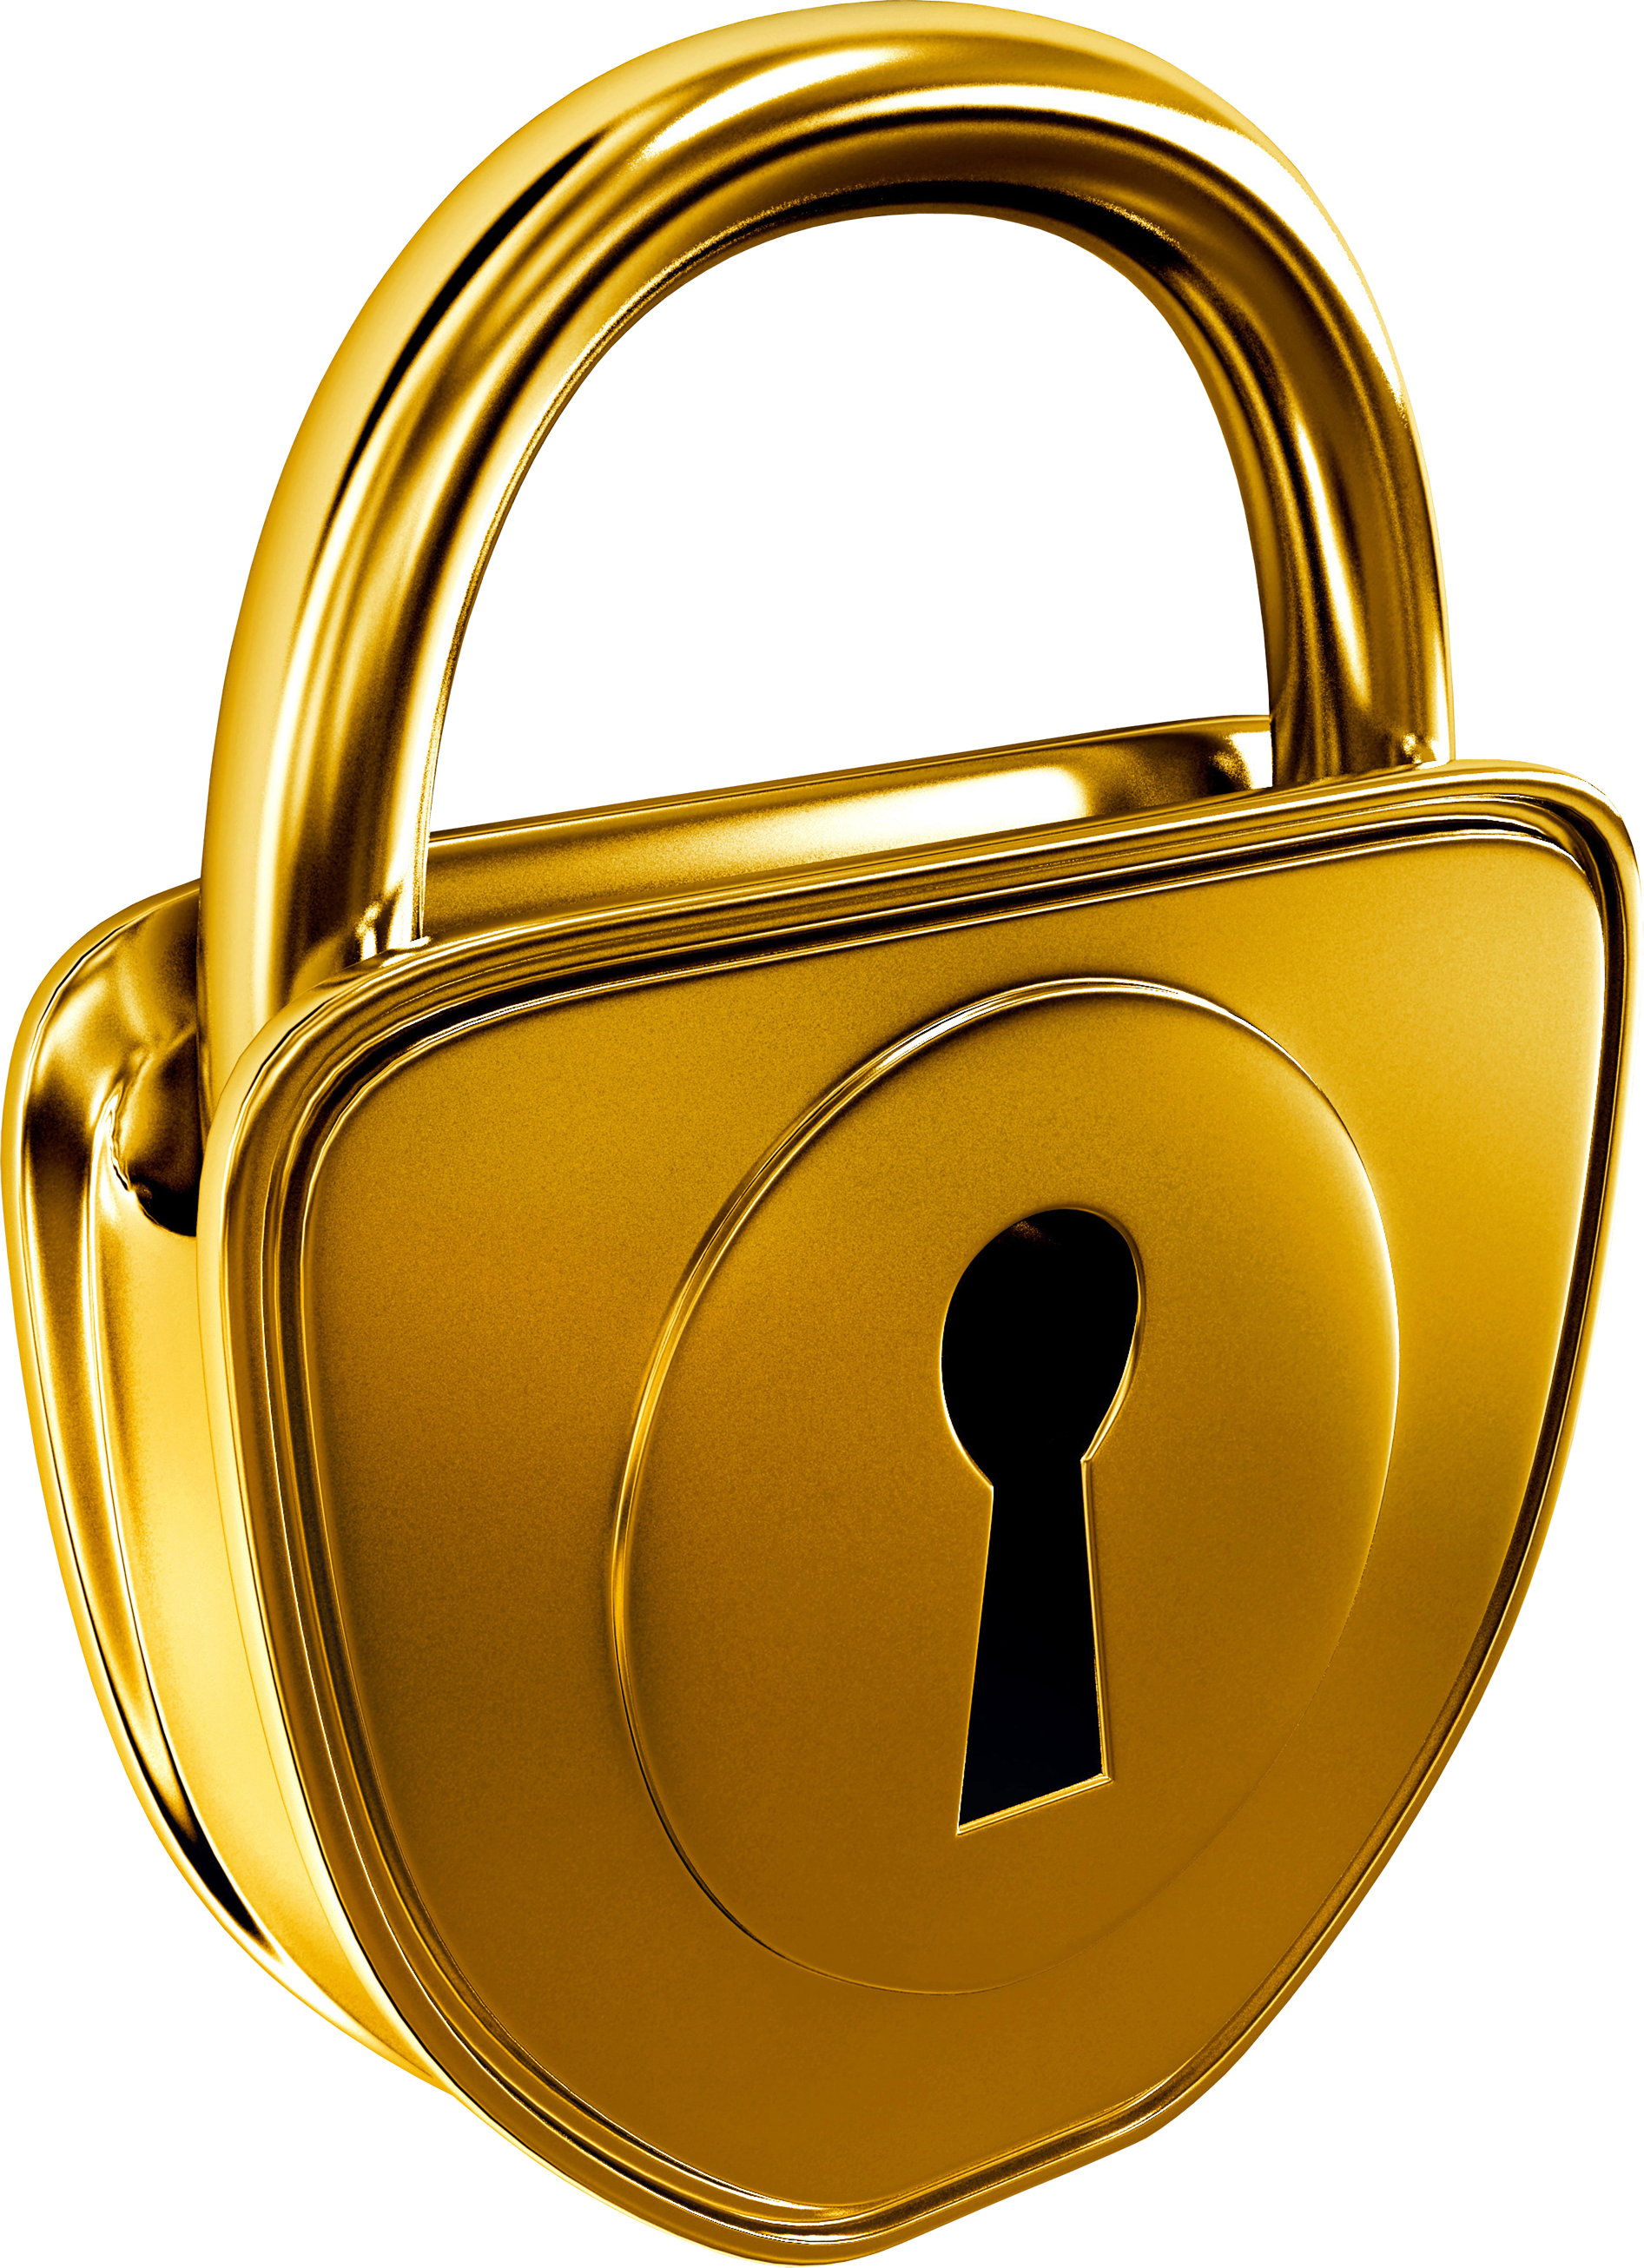 Lock clipart golden. Chair stickers png transparent